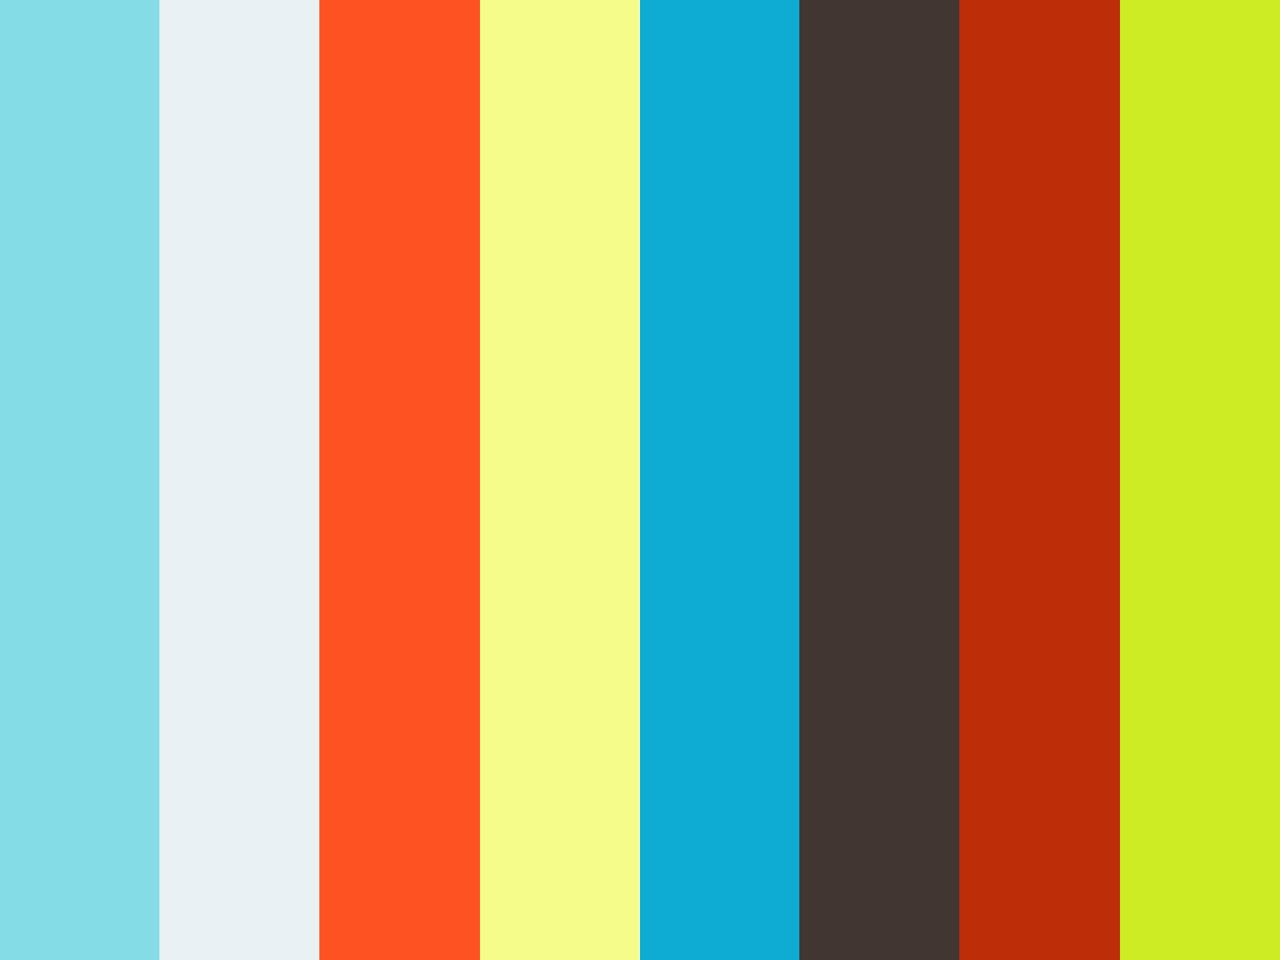 Nutrient Chart: Past Earths - Alan J. Kaufman University of Maryland on Vimeo,Chart